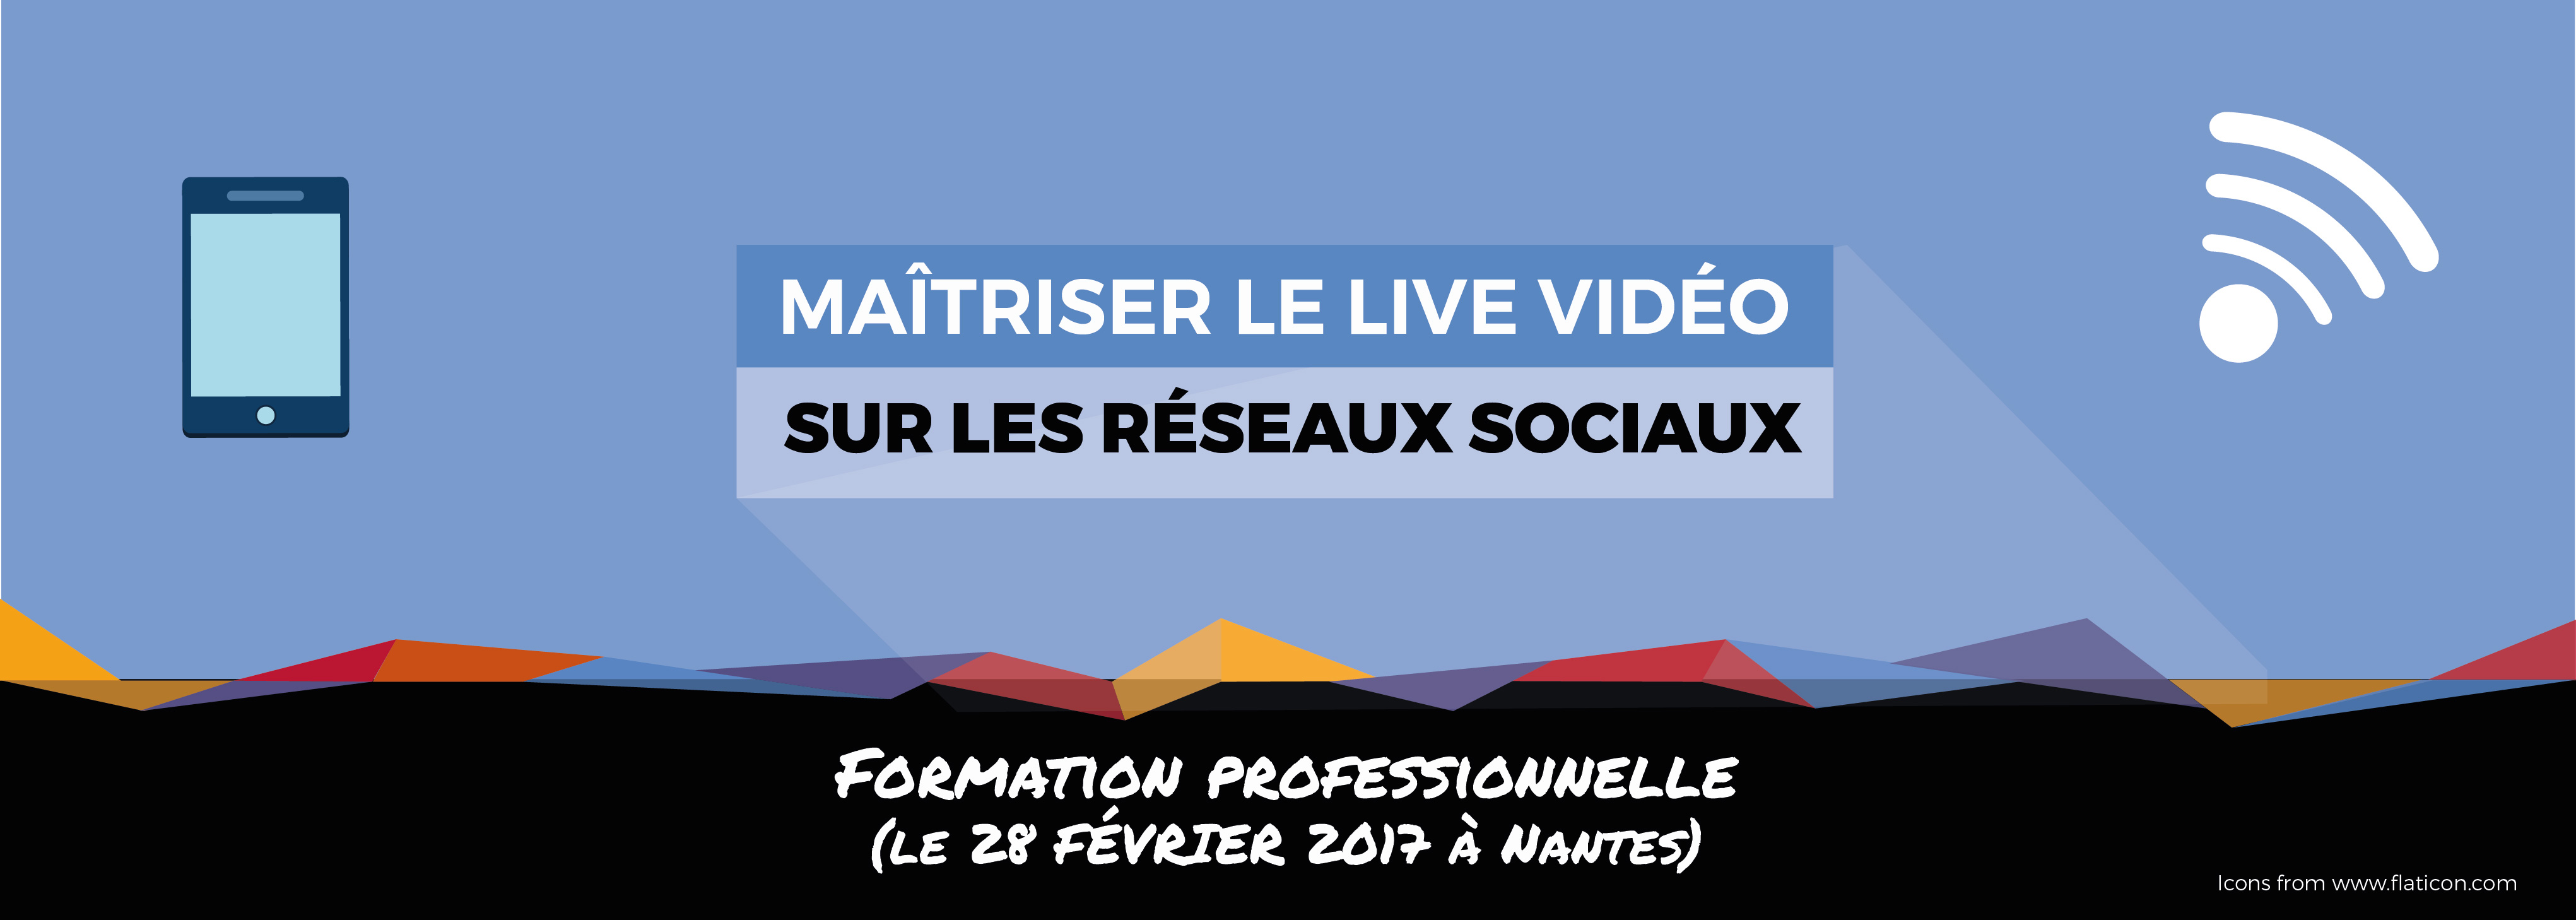 Slider-maitriser-le-live-video-sur-les-RS-01-1